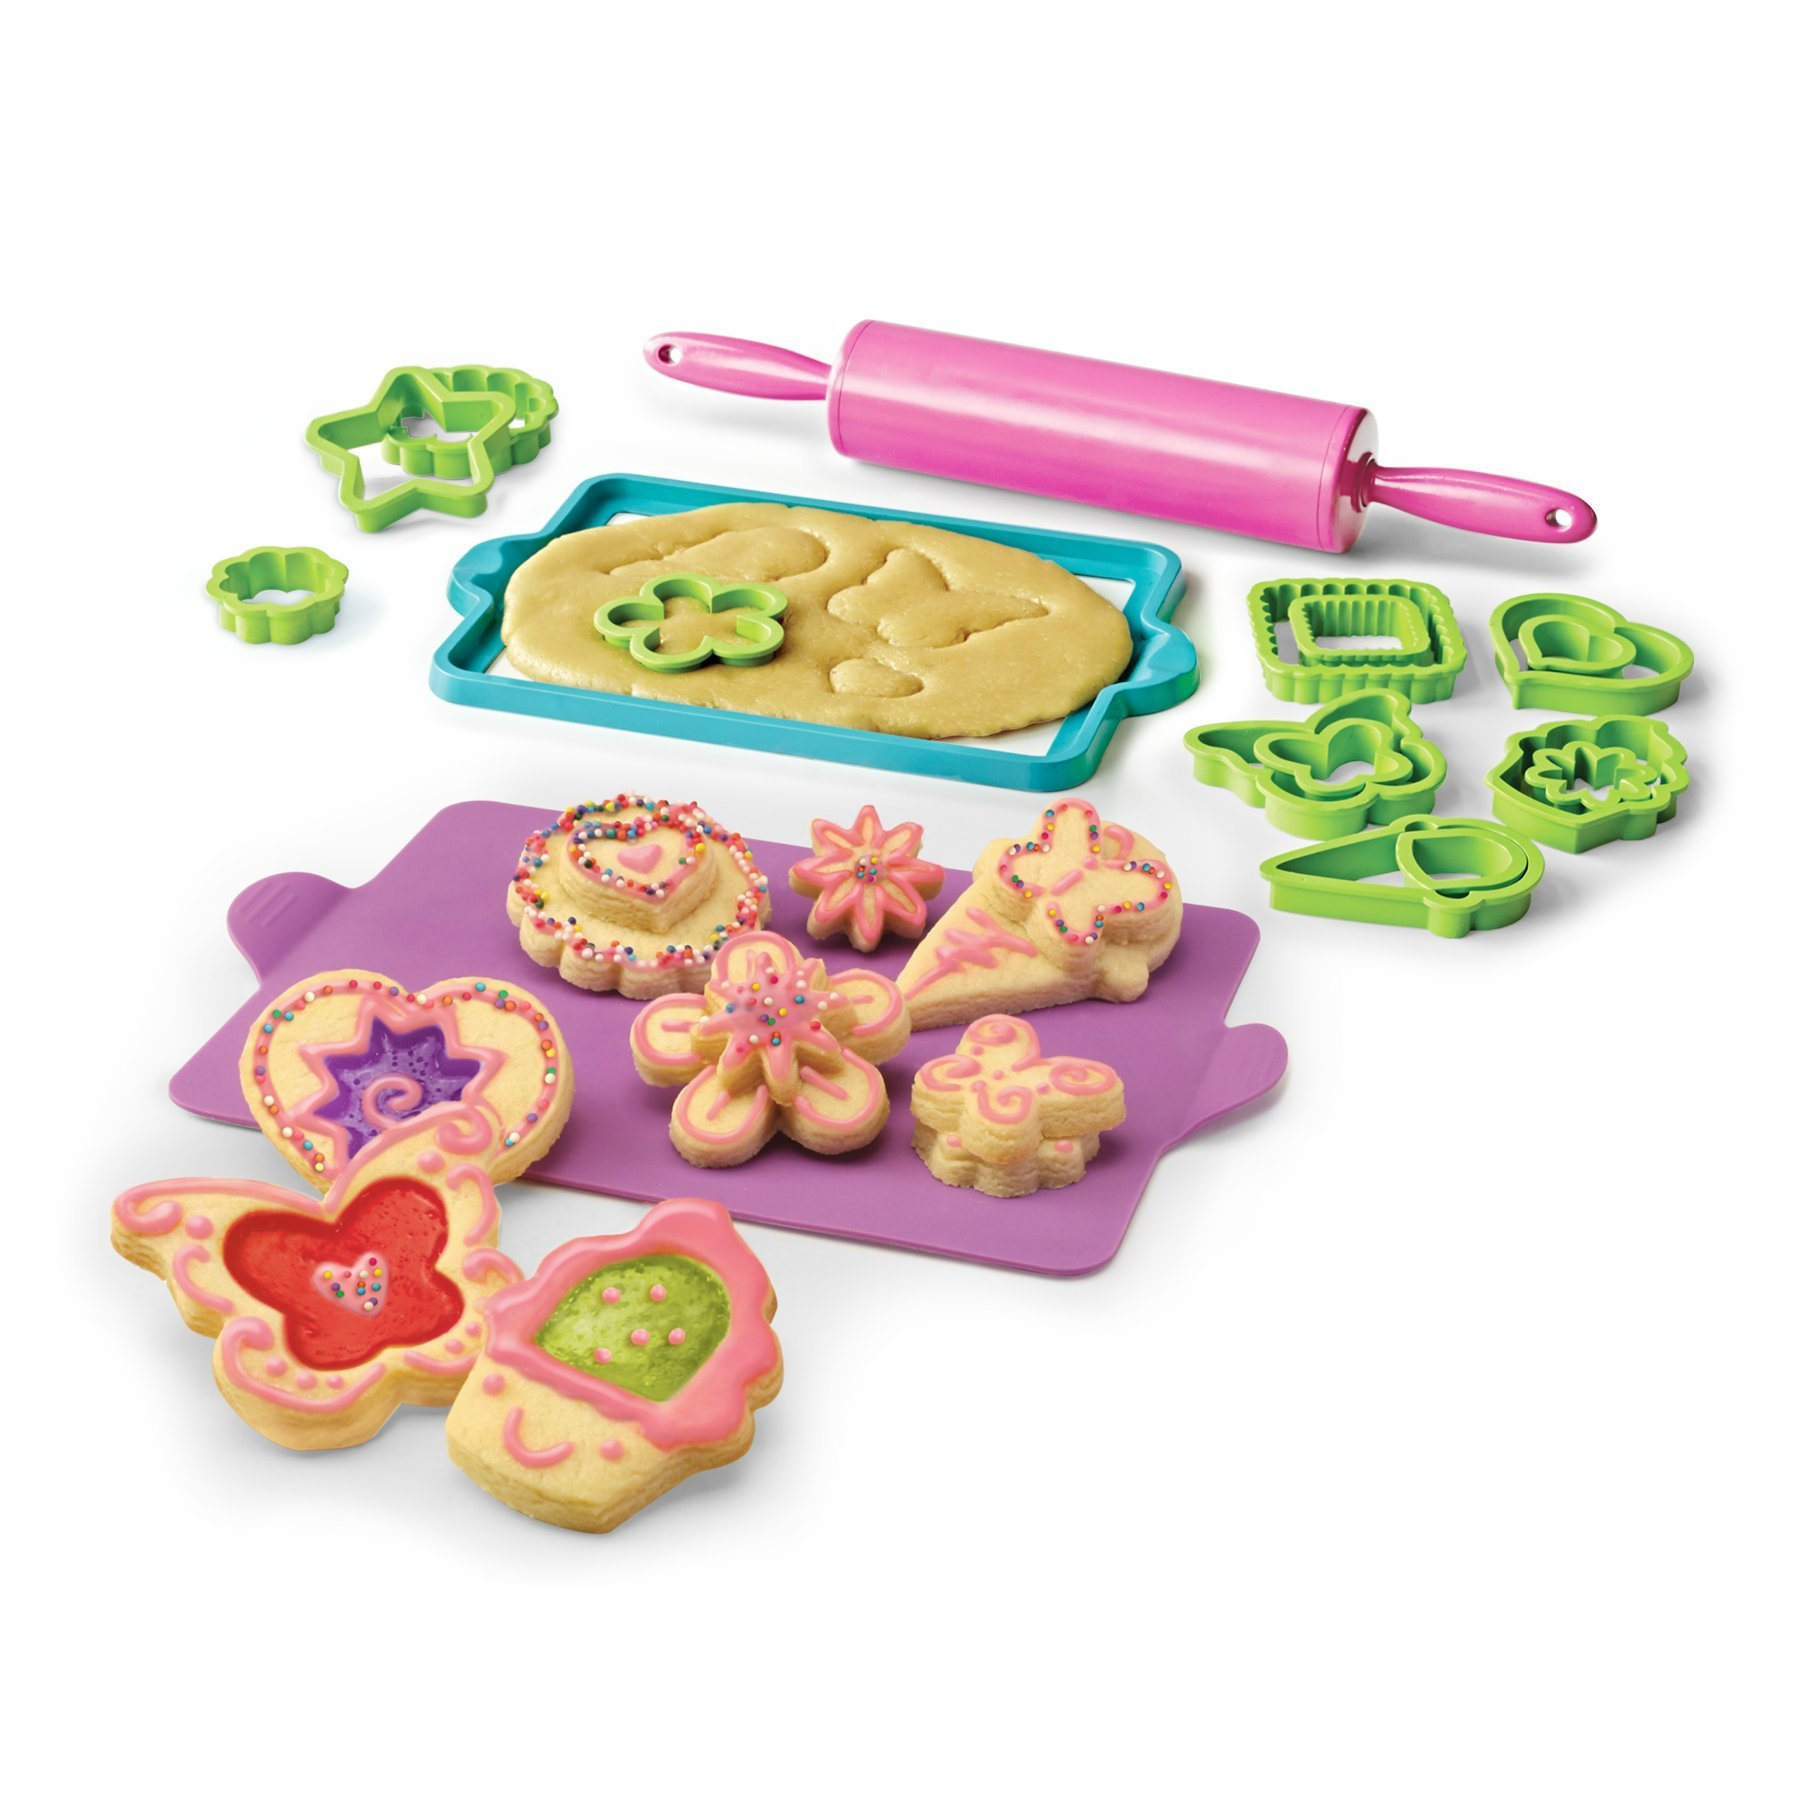 Skyrocket Real Cooking Deluxe Cookie Baking Set - 25 Pc. Kit Includes Sprinkles, Candy, and Mixes by Skyrocket